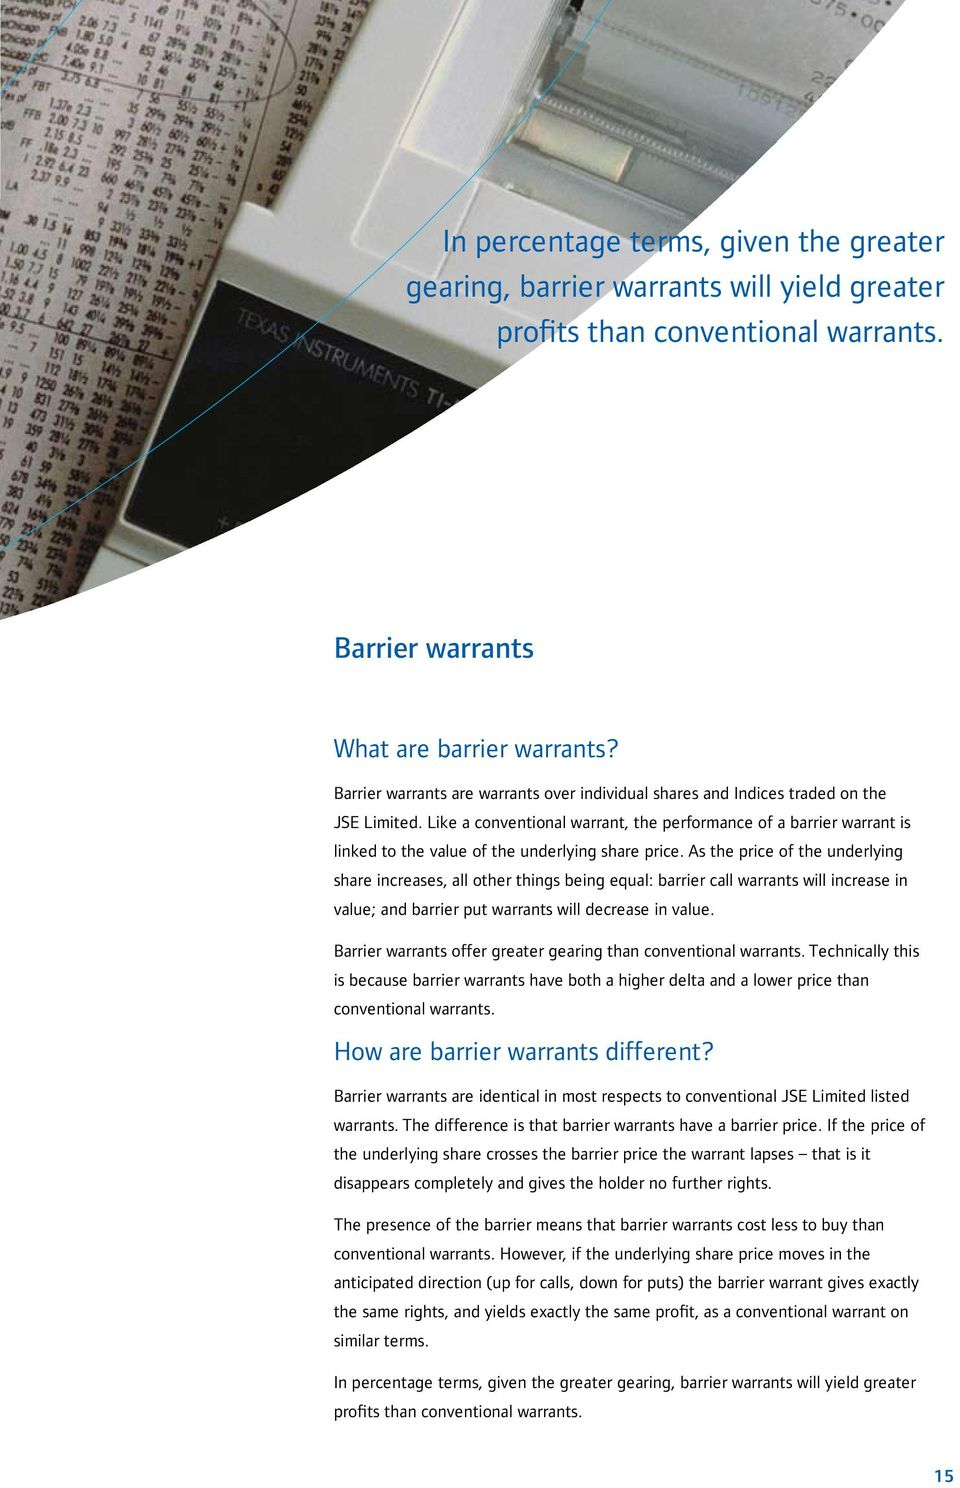 Like a conventional warrant, the performance of a barrier warrant is linked to the value of the underlying share price.